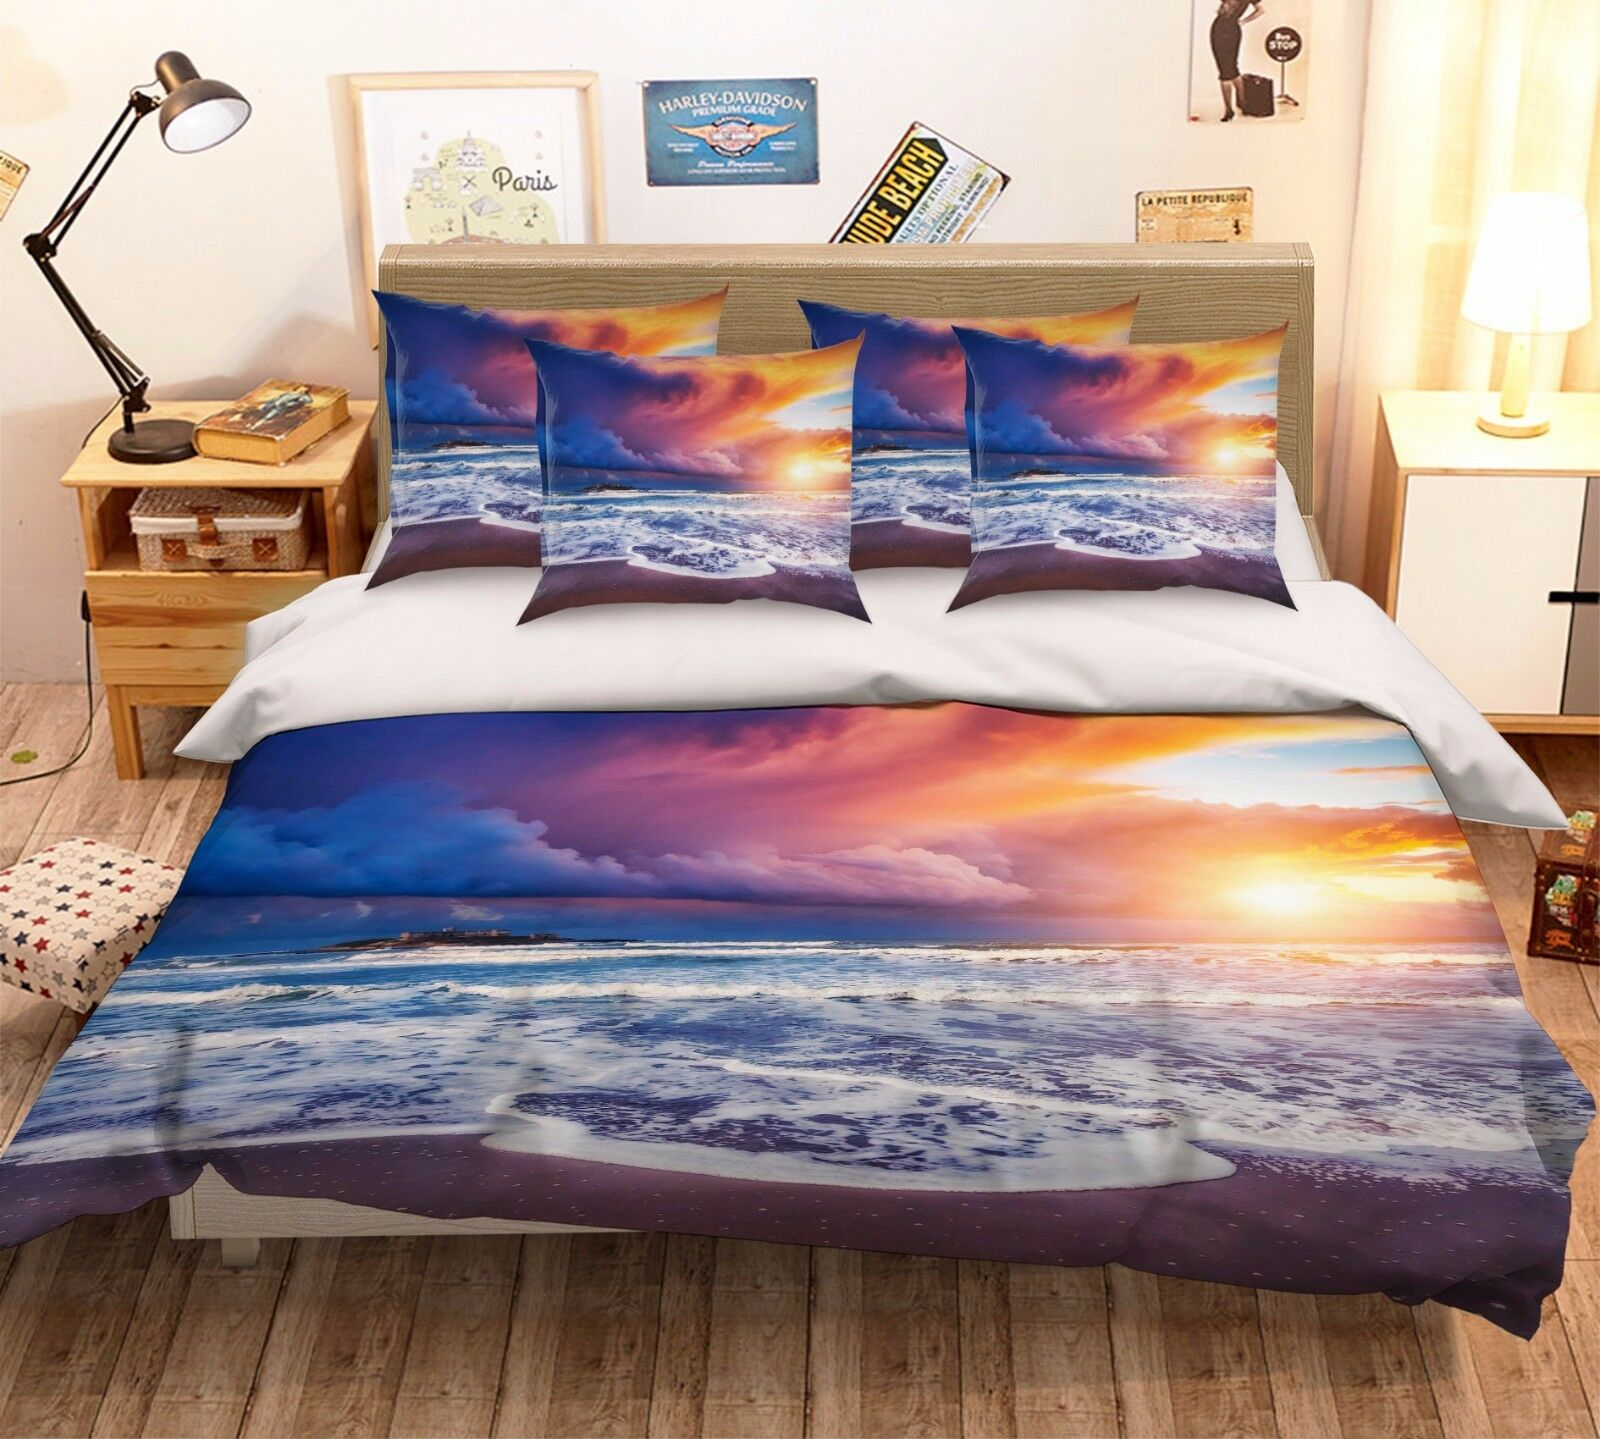 3D Sunset Sea 27 Bett Pillowcases Quilt Duvet Startseite Set Single Königin König Größe AU